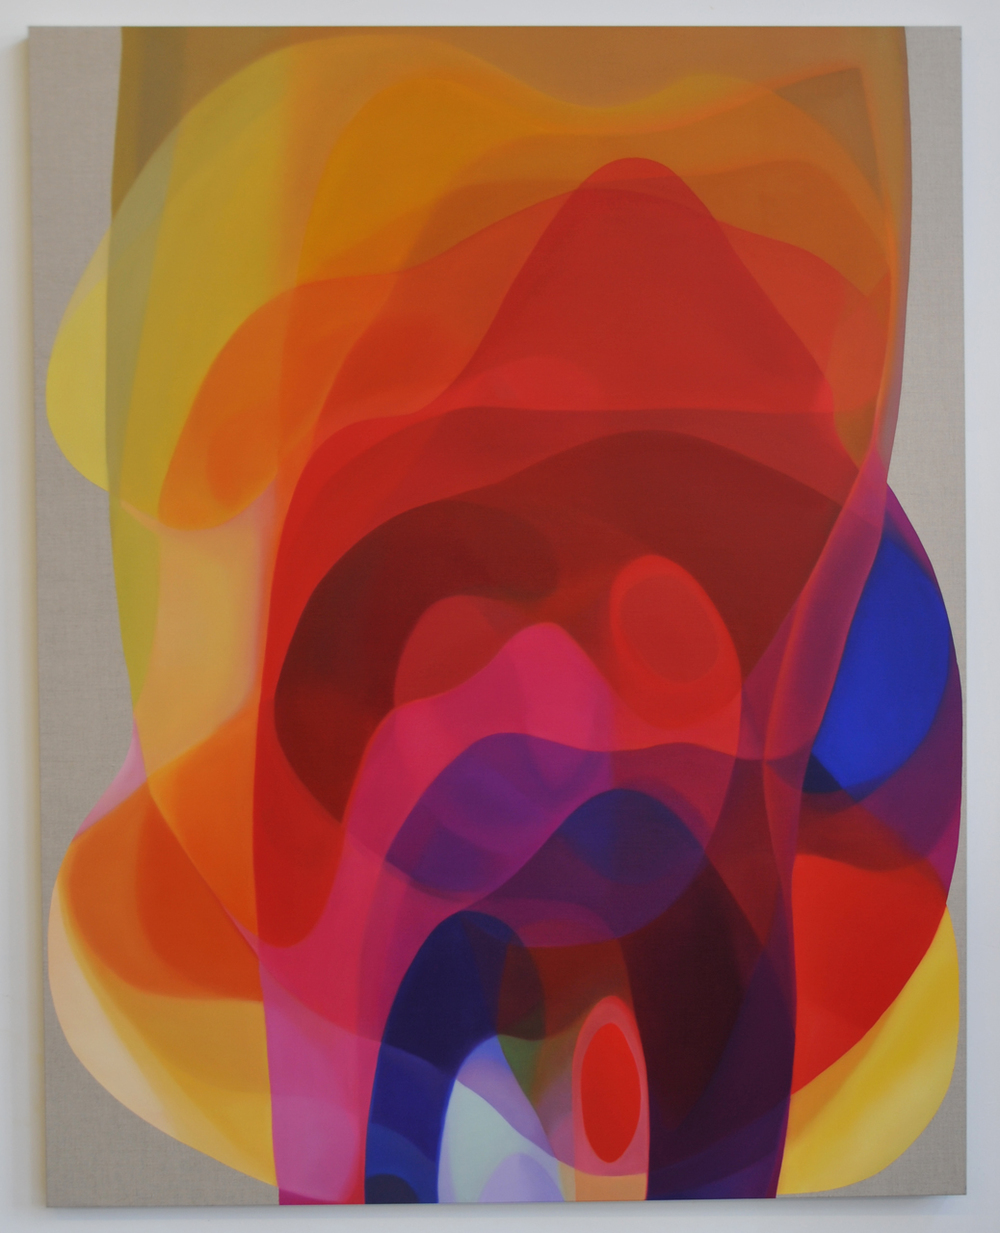 JOHN YOUNG   Veiled Spectrum IV   2014   Oil on linen   190 x 150 cm